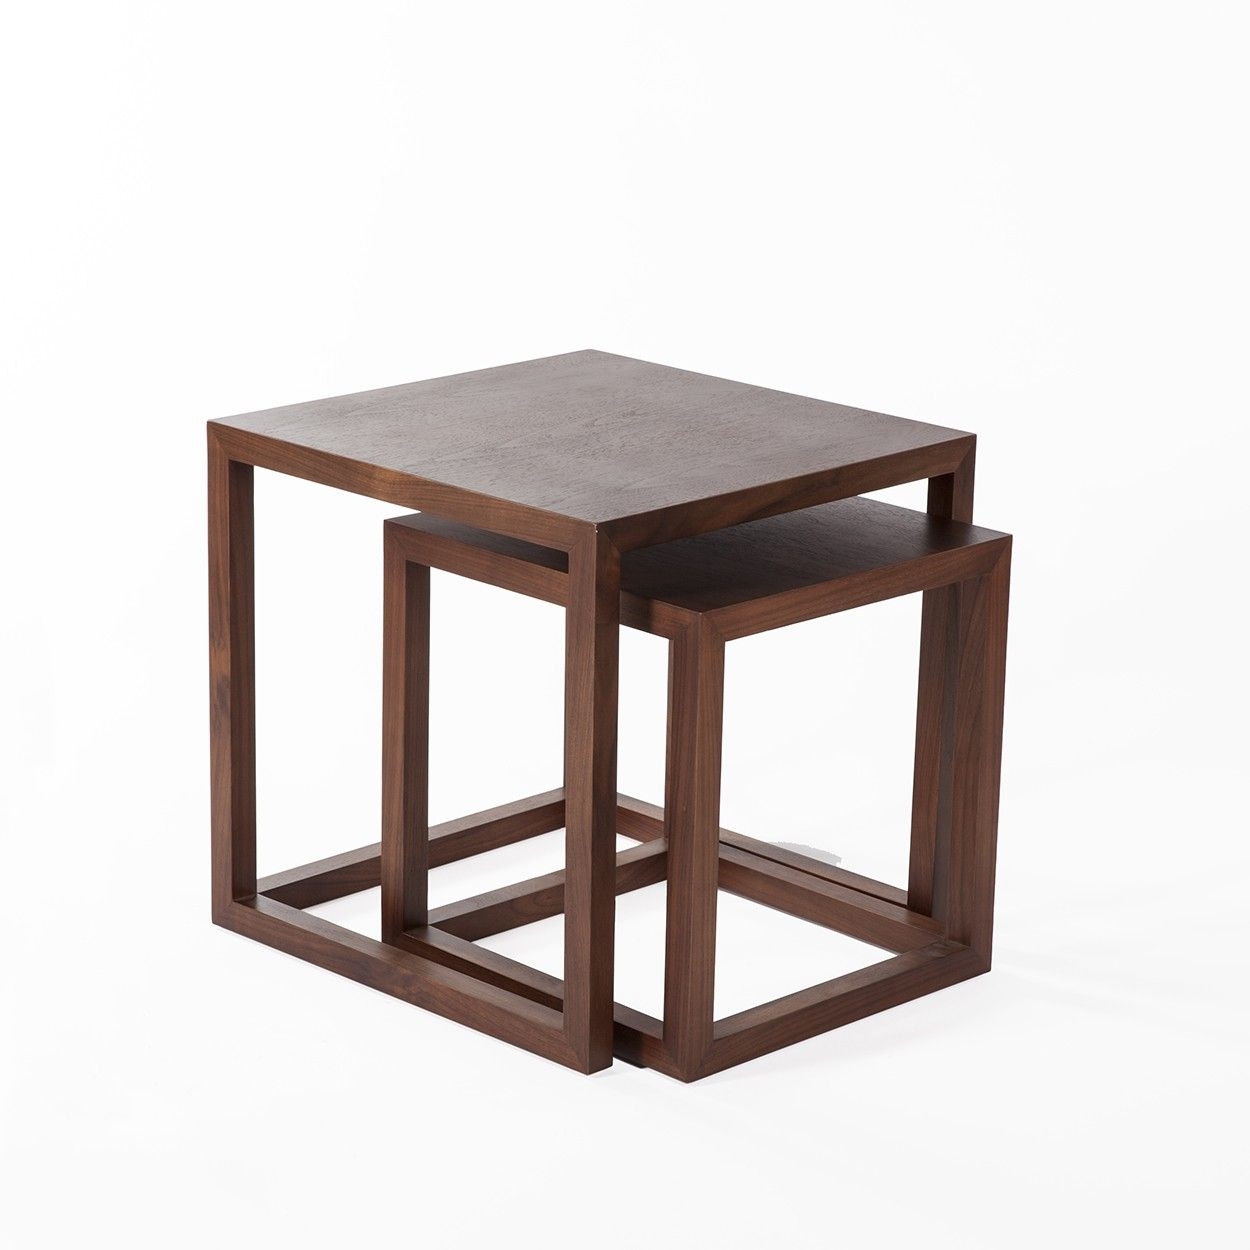 The Everhart Nesting Tables Contemporary Wood Nesting Table Http Www Franceandson Com Mid Century Modern Everhart Nesting Tables Table Wood Nesting Tables